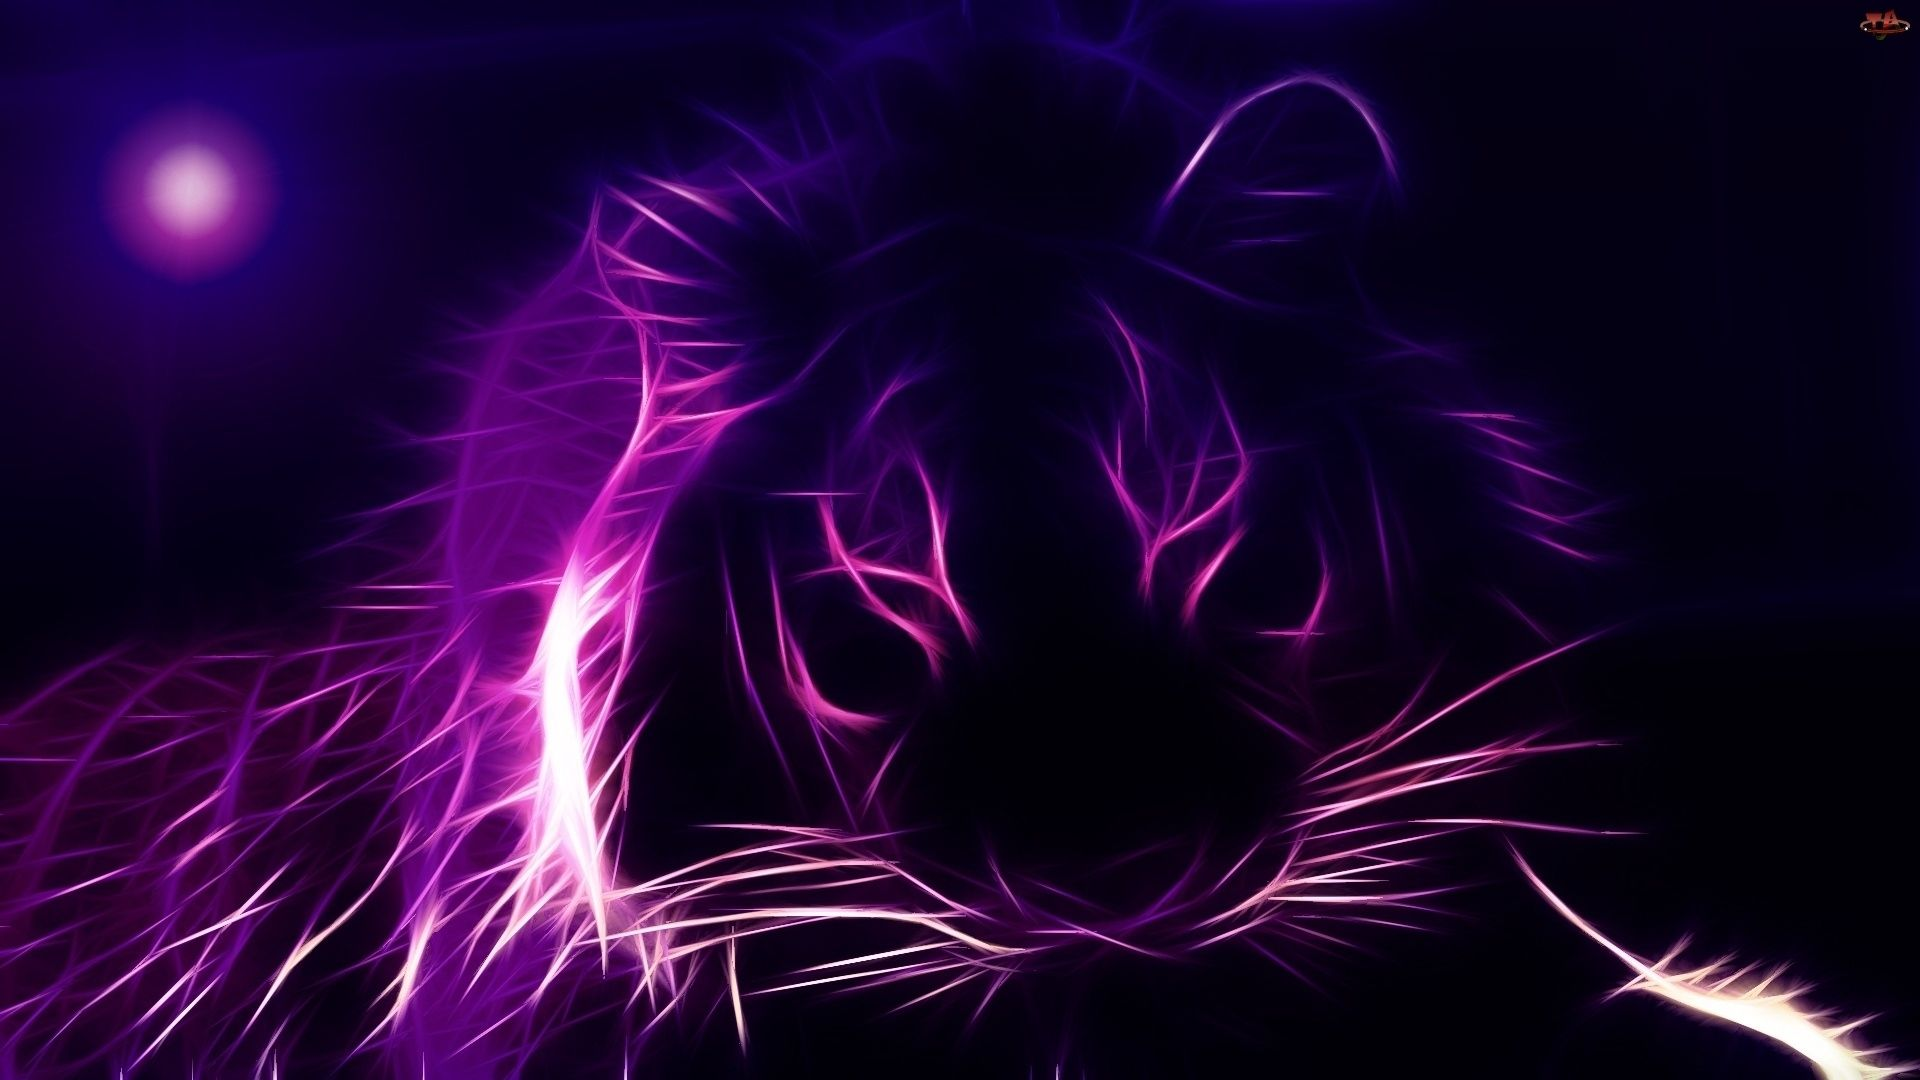 Colorfull Animal 3D HD 24 46440 Cool Wallpapers HD HD